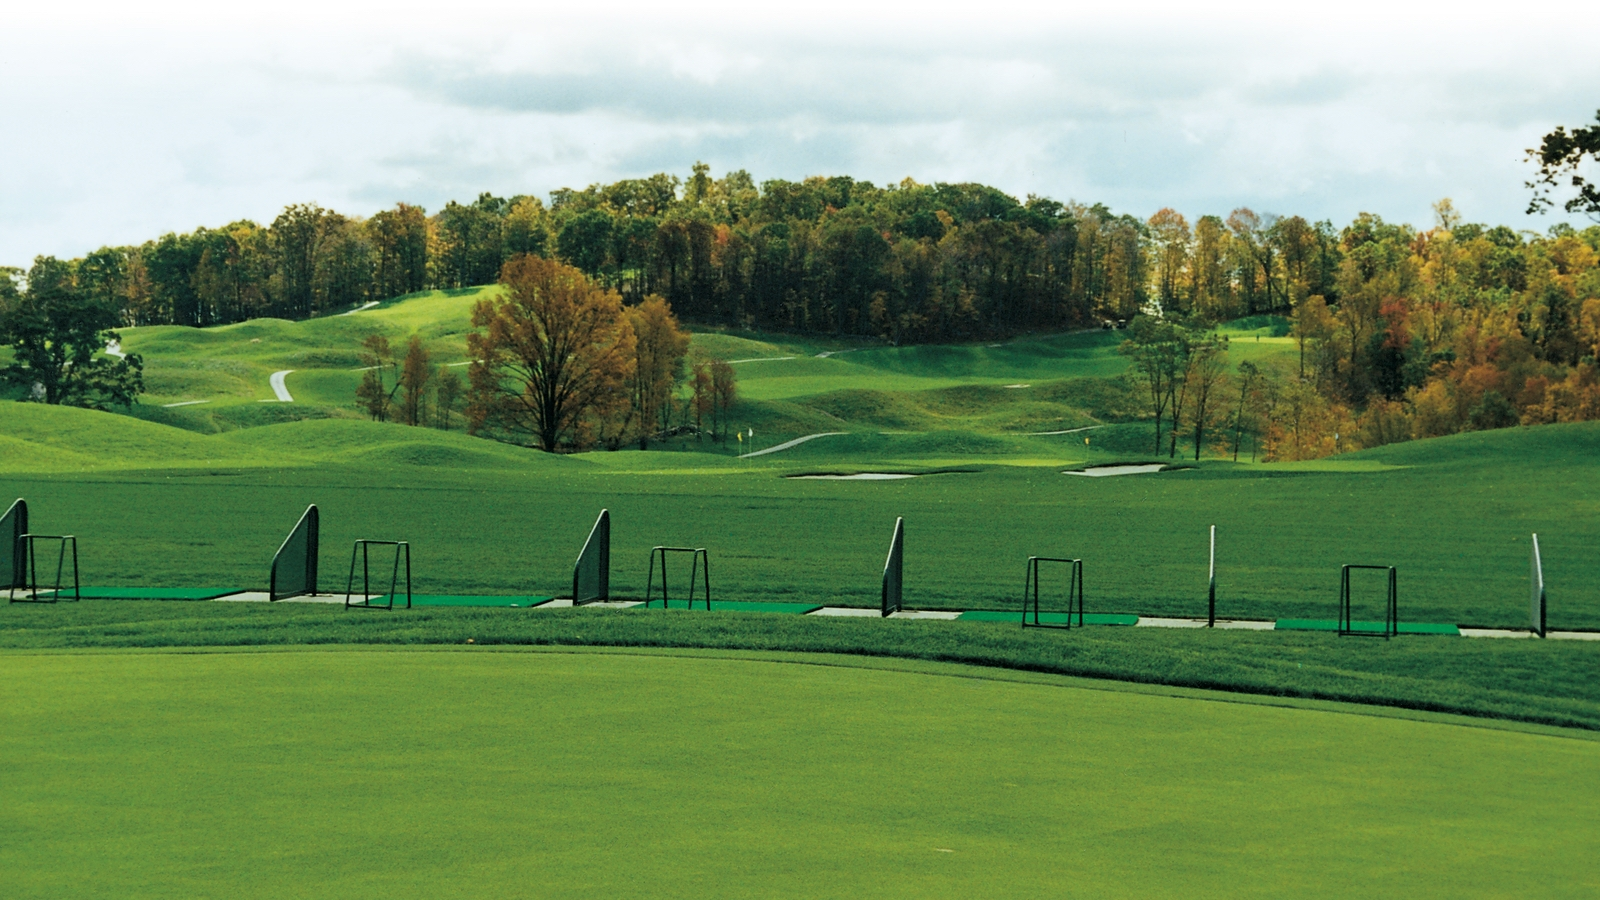 The driving range at Centennial Golf Club in Carmel, NY